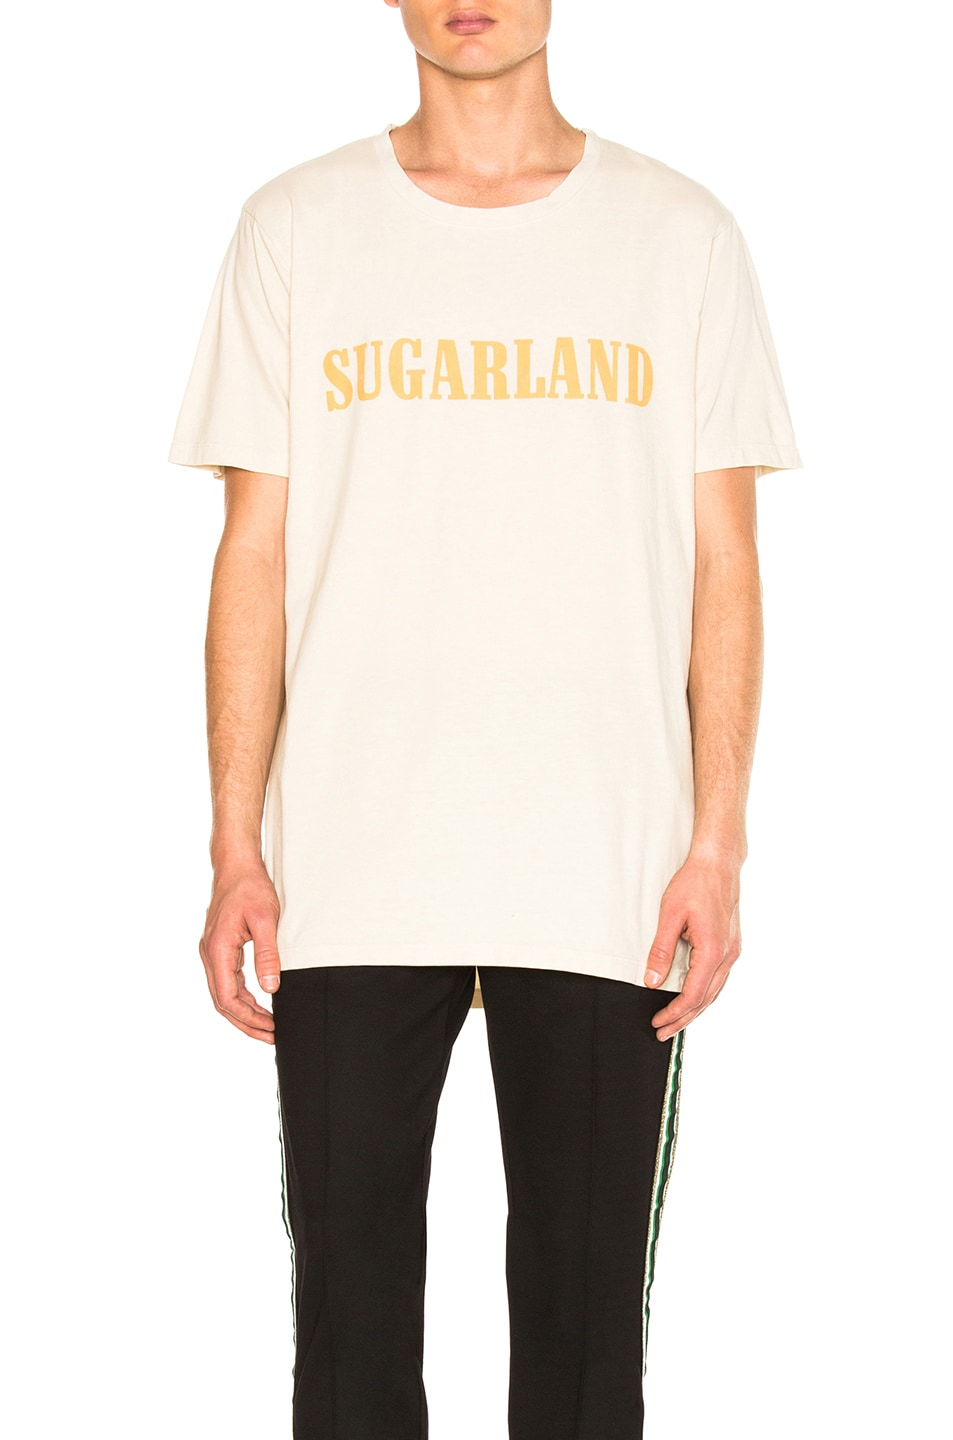 Image 1 of Rhude Sugarland Tee in Vintage White & Yellow